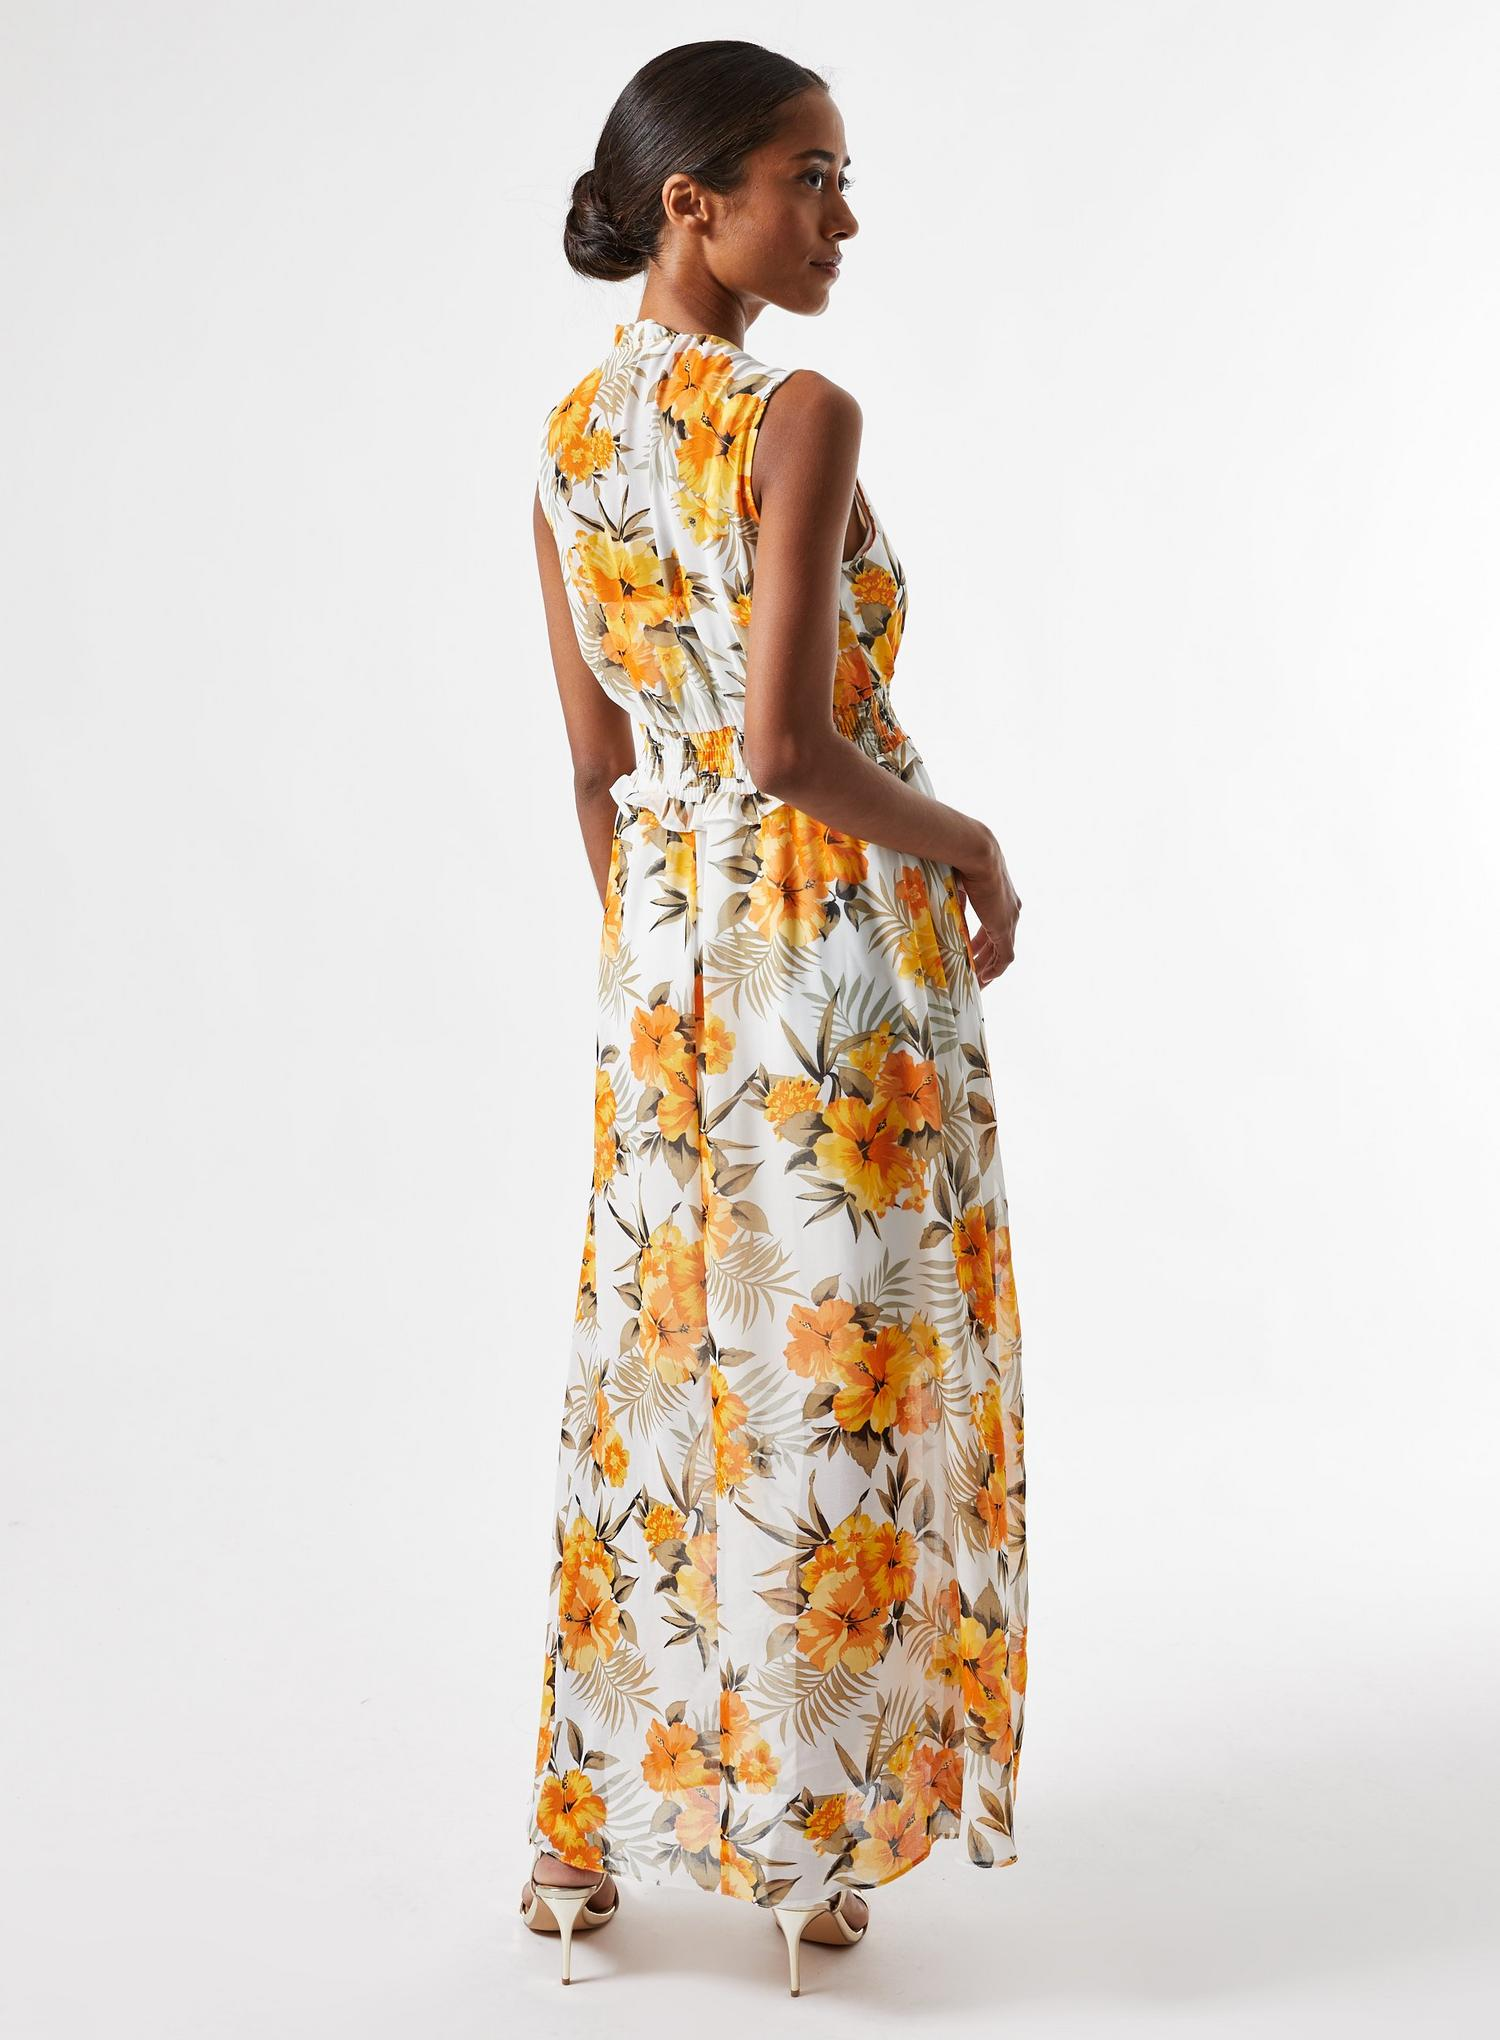 133 Petite Ochre Tropical Print Maxi Dress image number 4